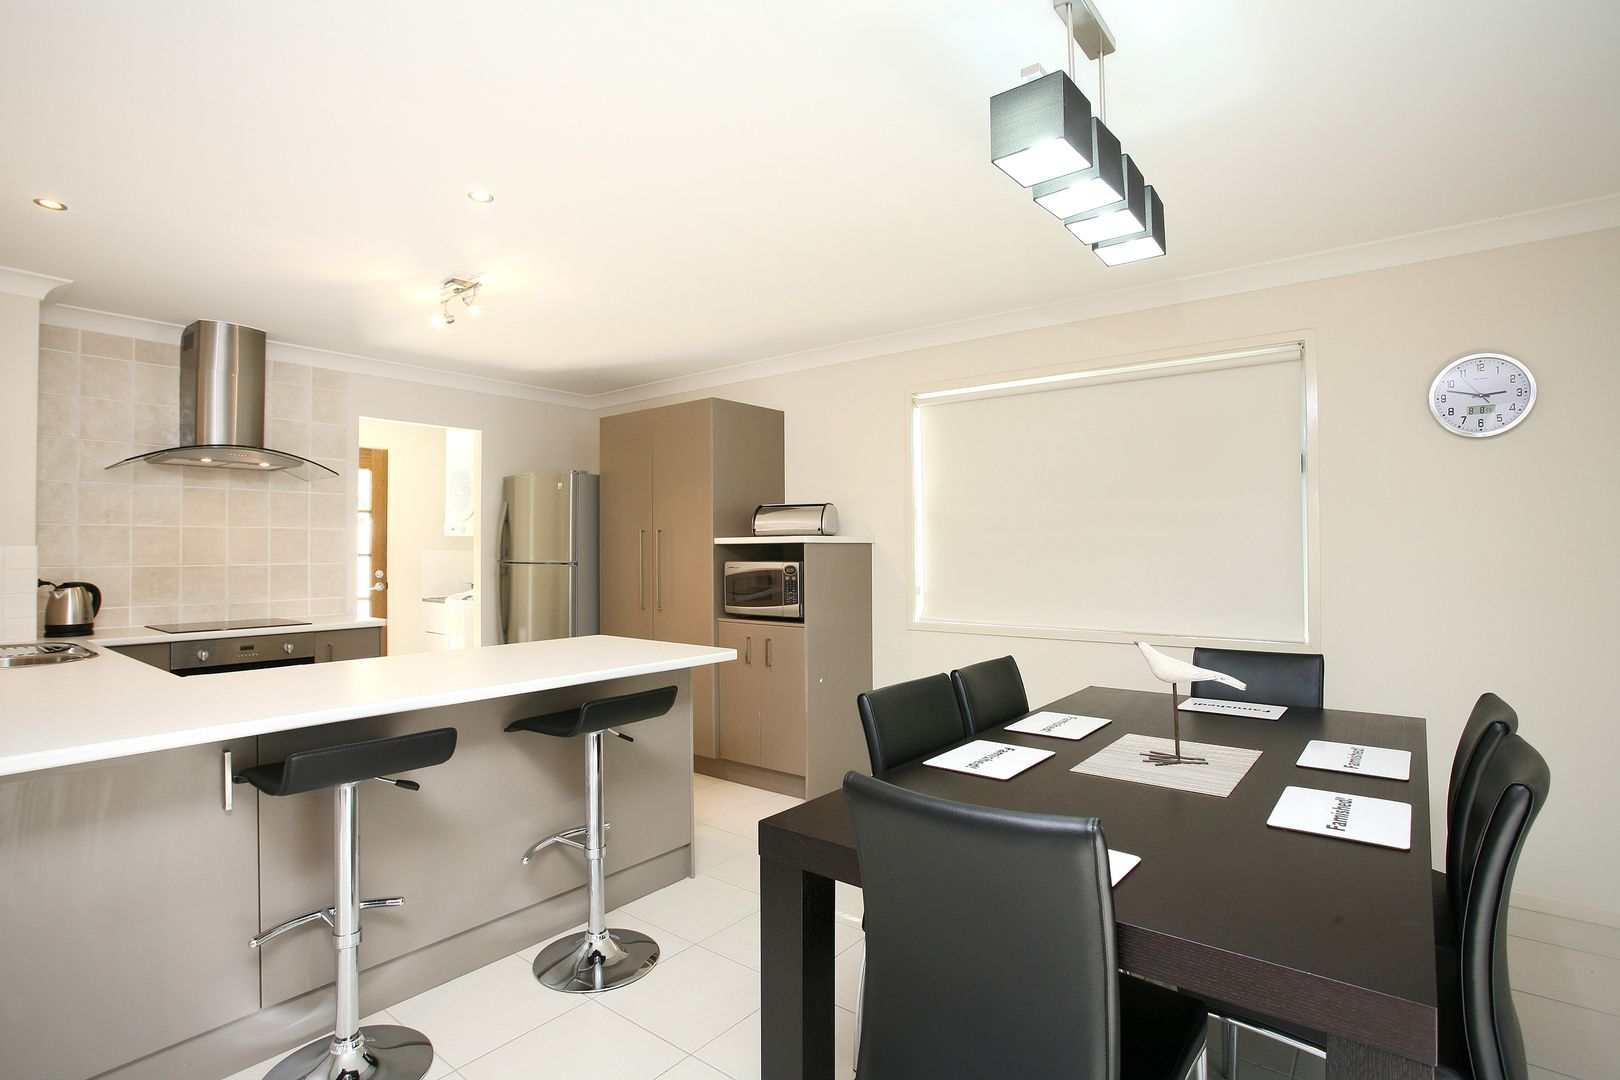 Woodford Street, One Mile QLD 4305, Image 2